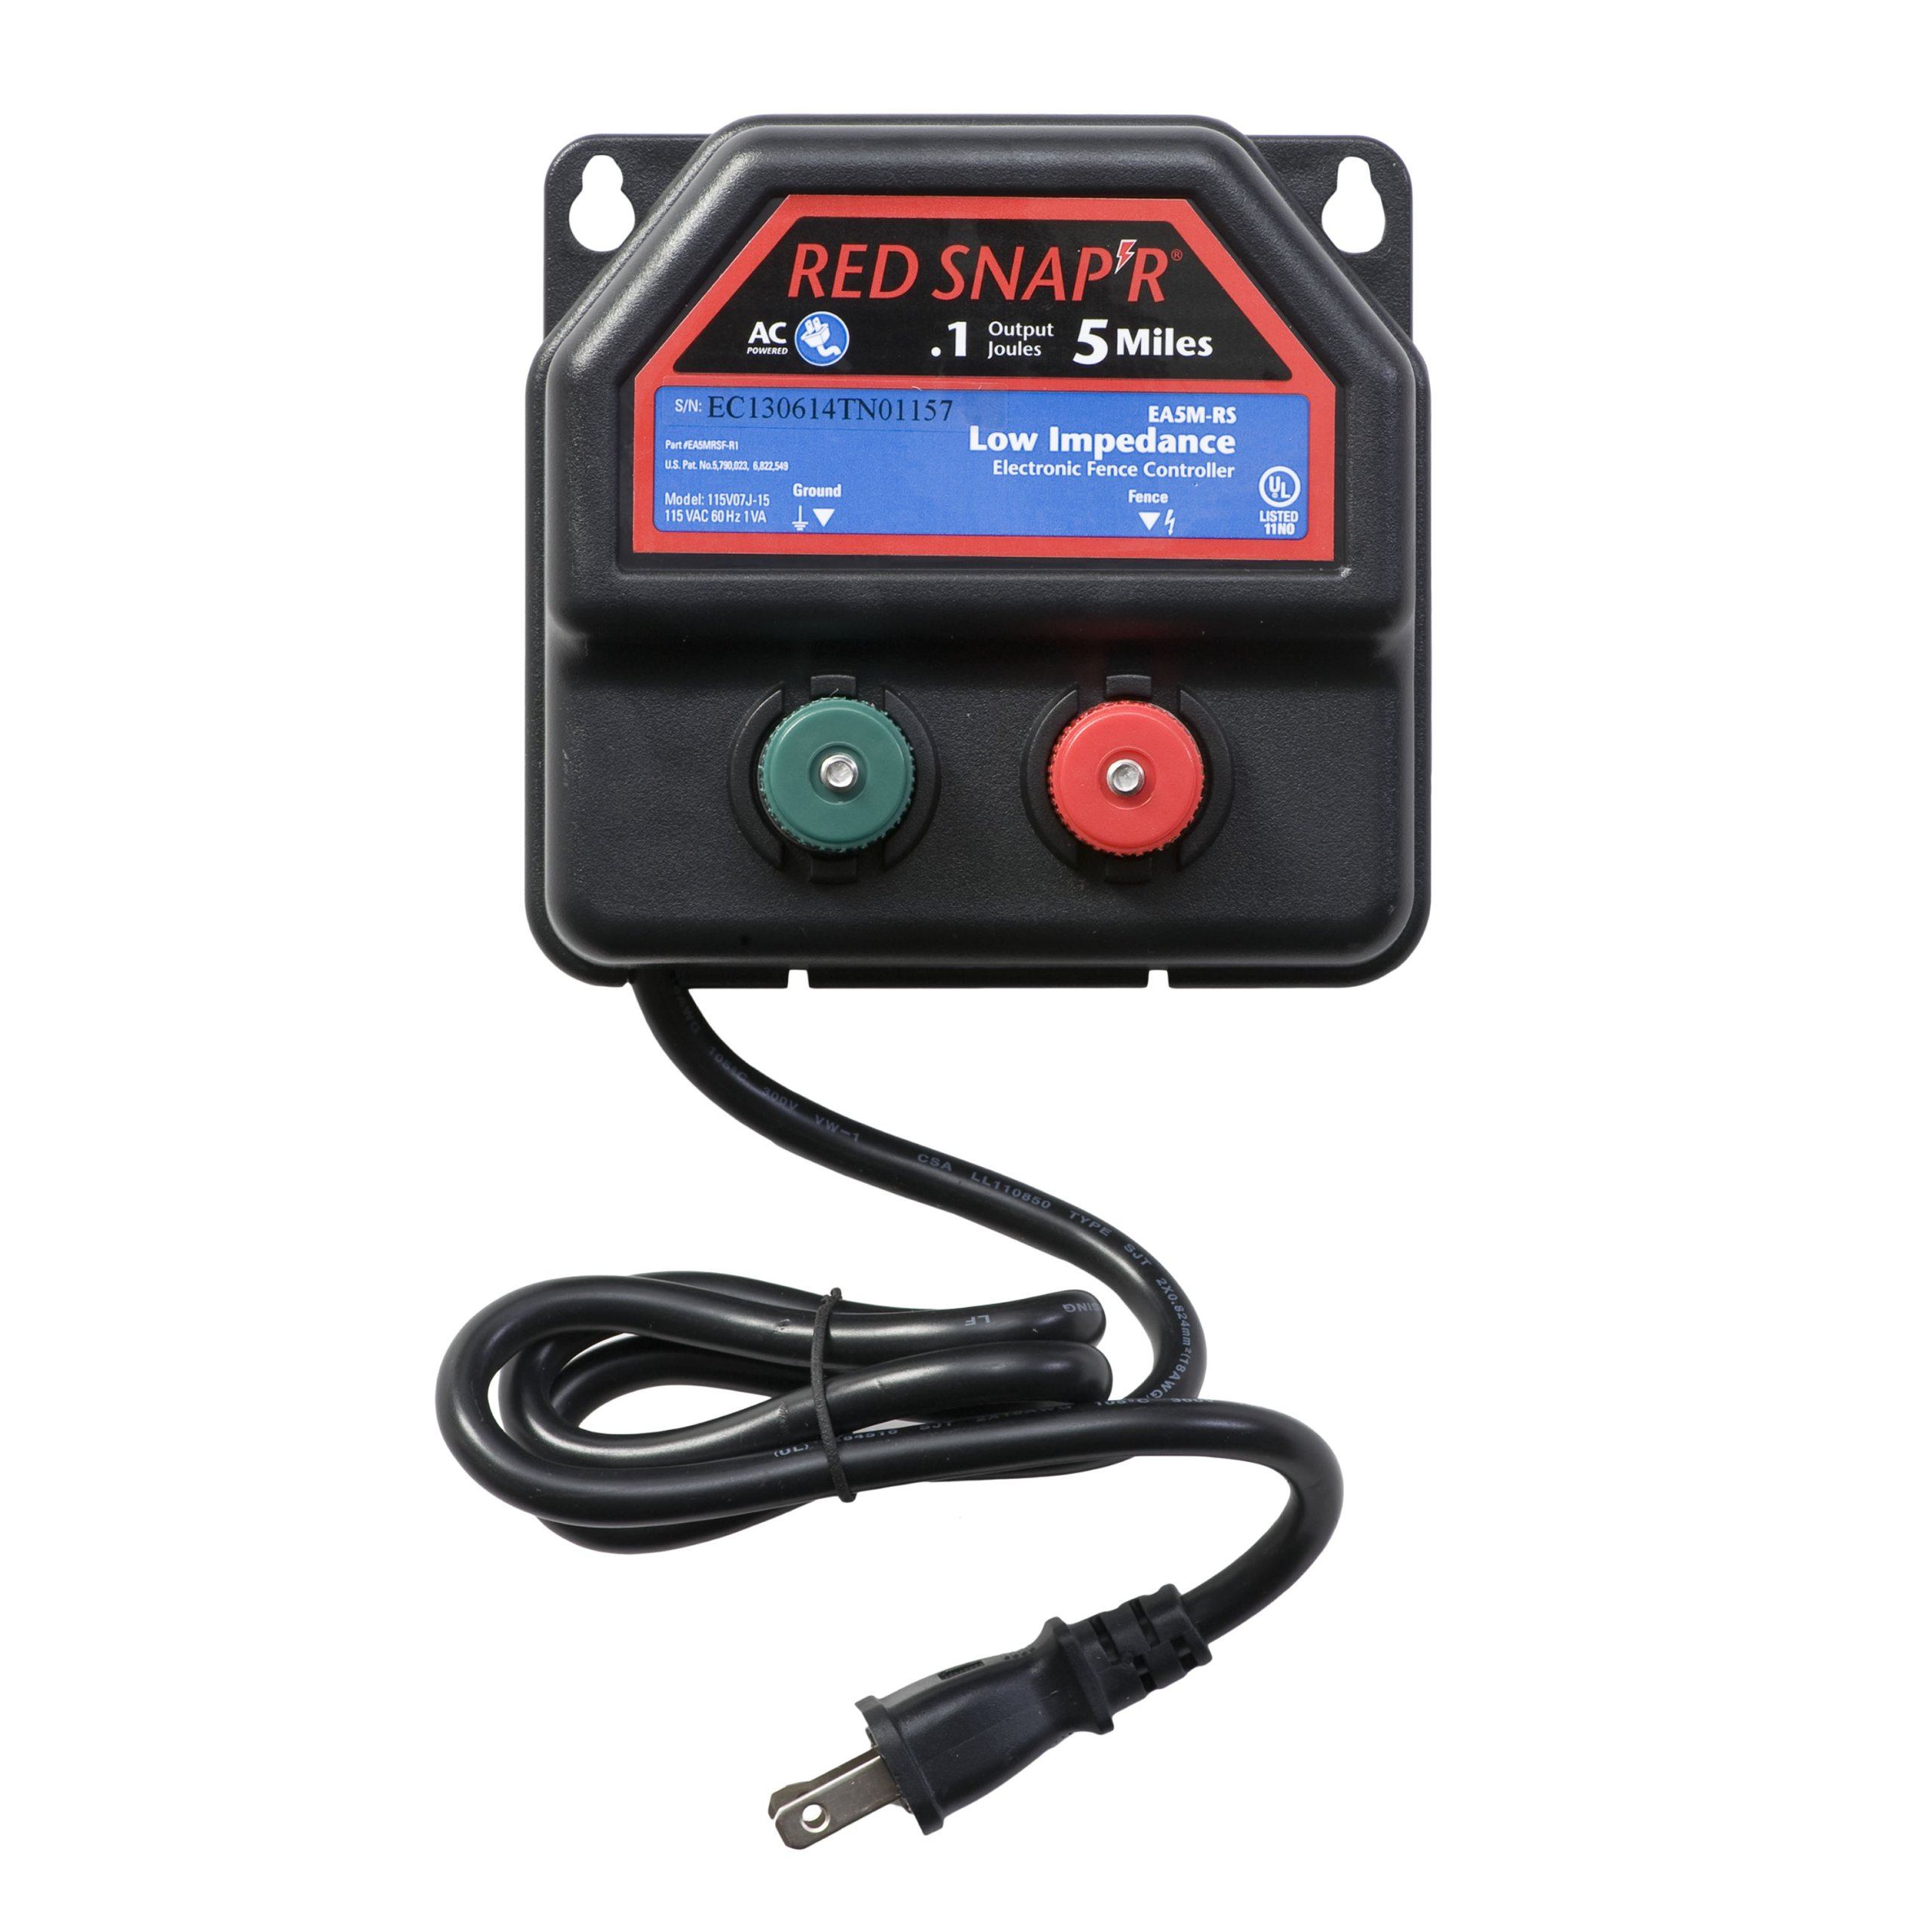 RED SNAP'R EA5M-RS 5-Mile AC Powered Fence Charger